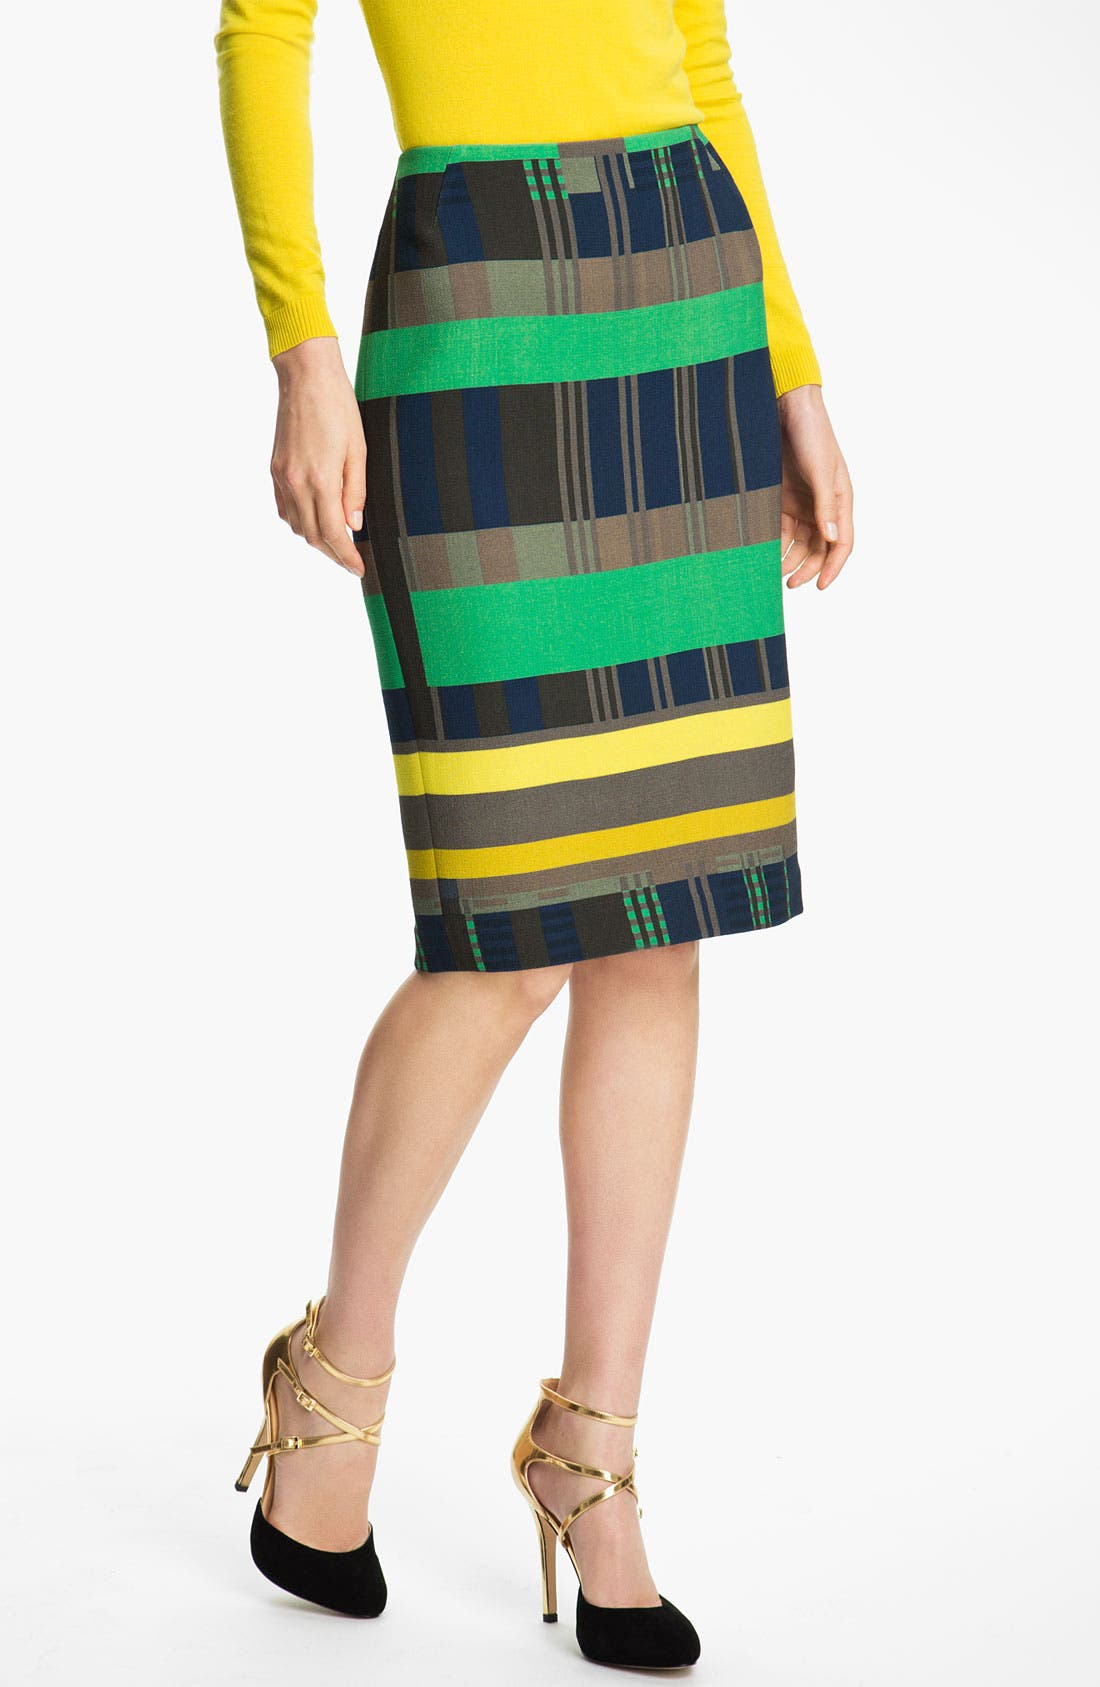 Alternate Image 1 Selected - Lafayette 148 New York Cubism Print Skirt